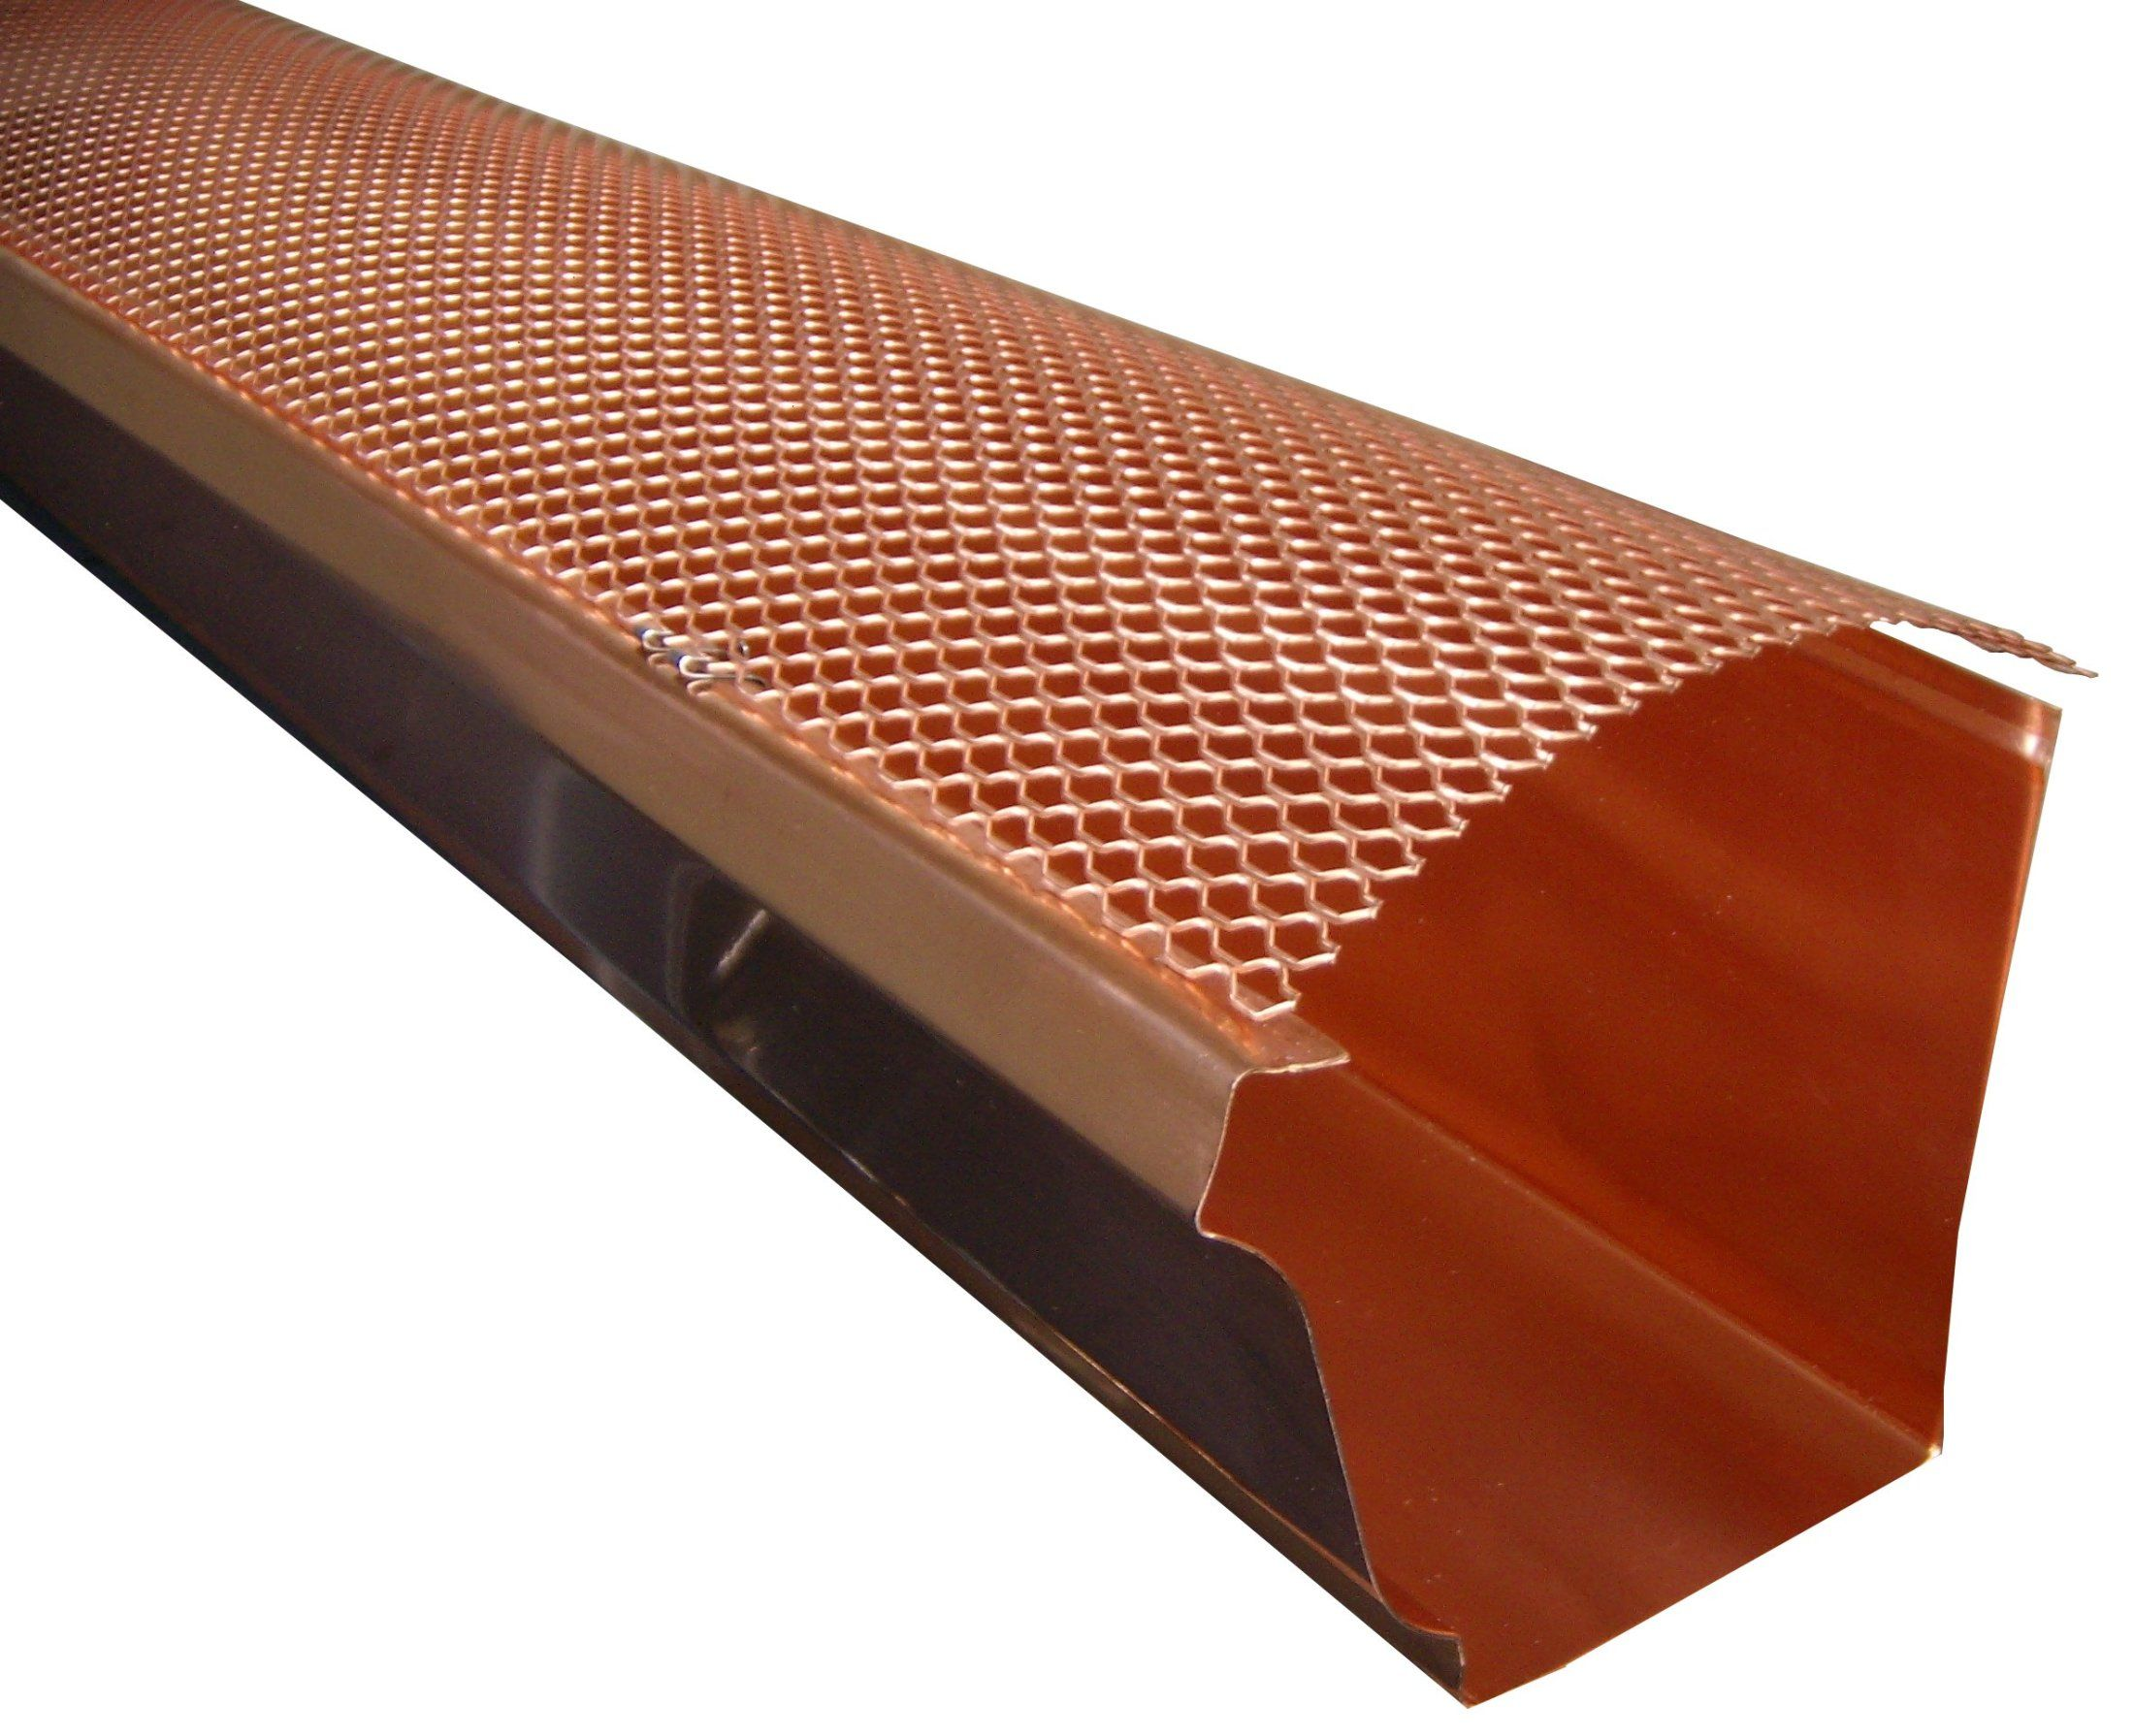 Interior : Gutter Protection Mild Steel Container With Water And Rust Resistant Steel Nets And A Strong Material Of A Mixture Of Copper Different Types Of Gutter Protection Systems Drainer Reviews. Force Reviews. Clean Agnes Water.